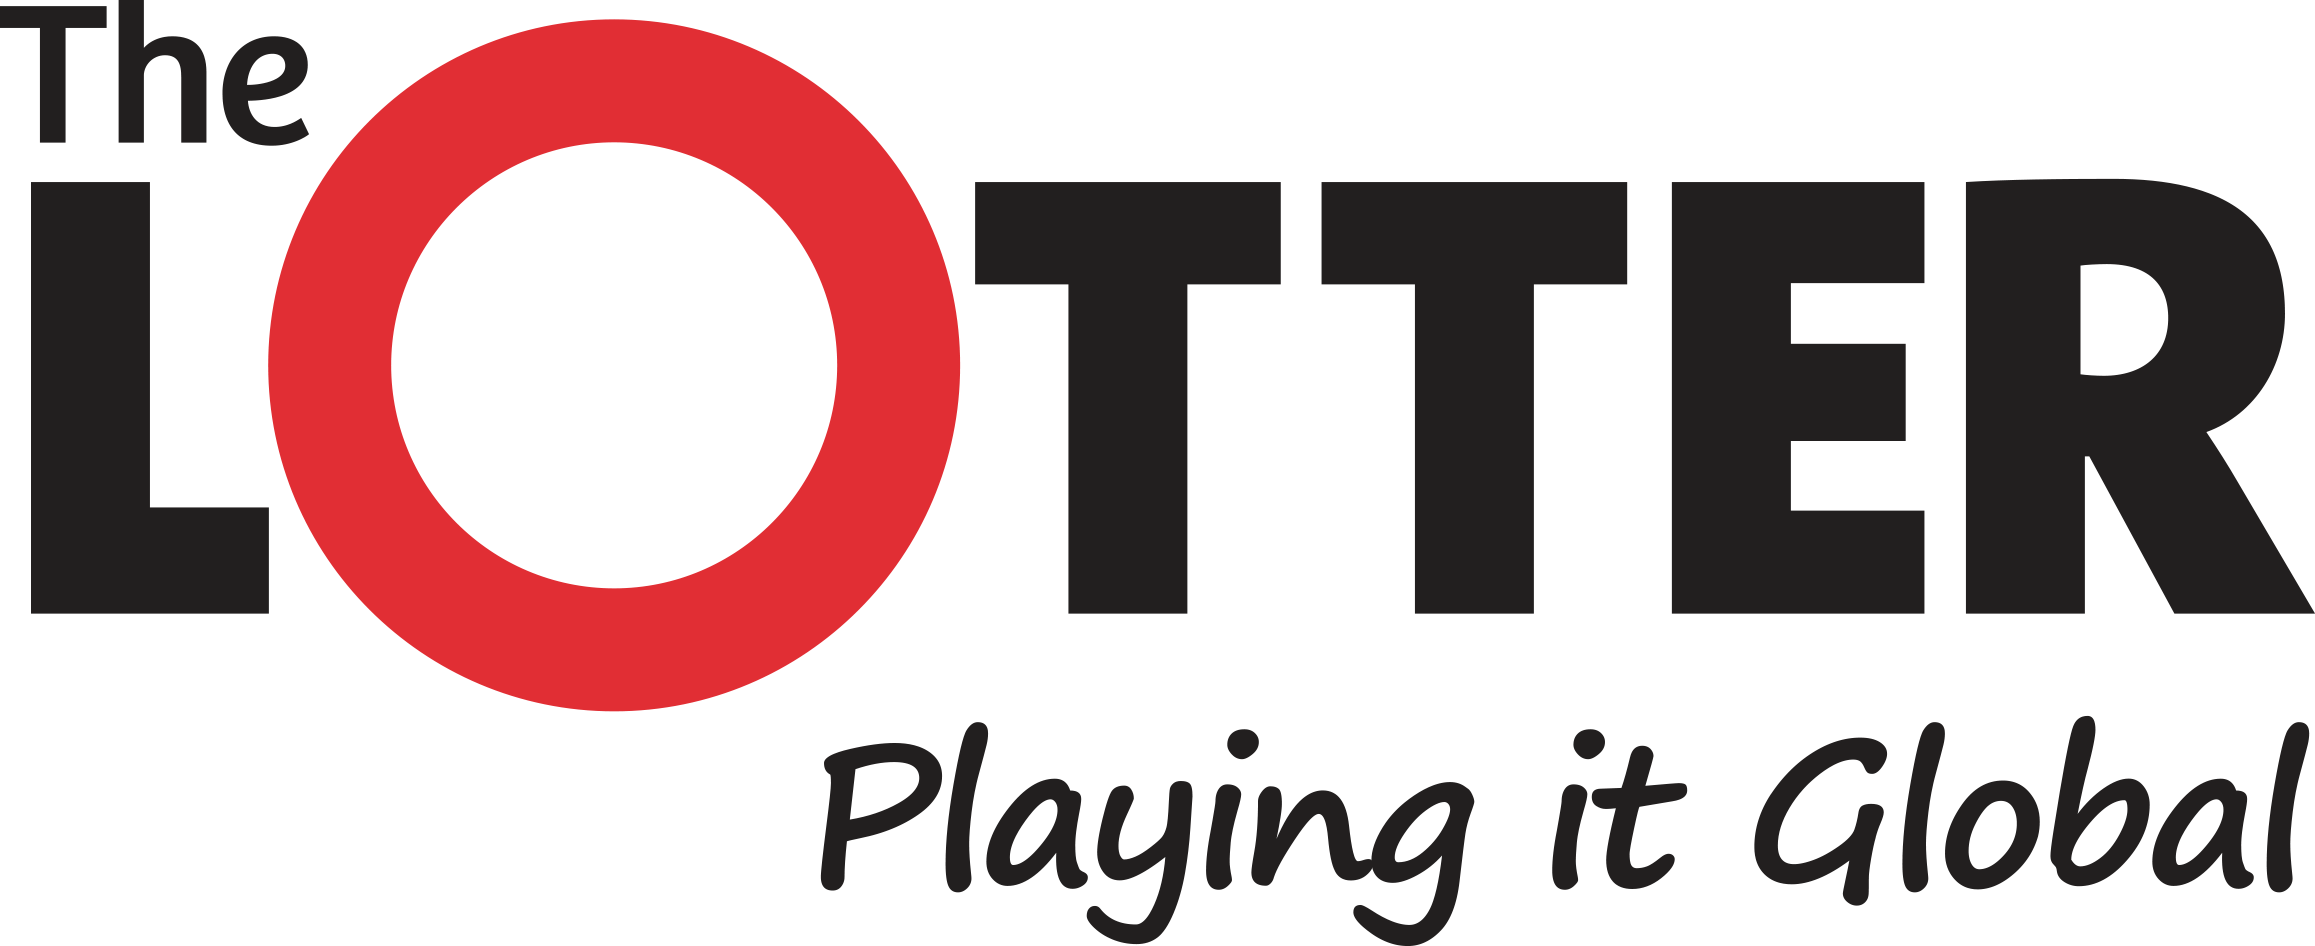 theLotter logo